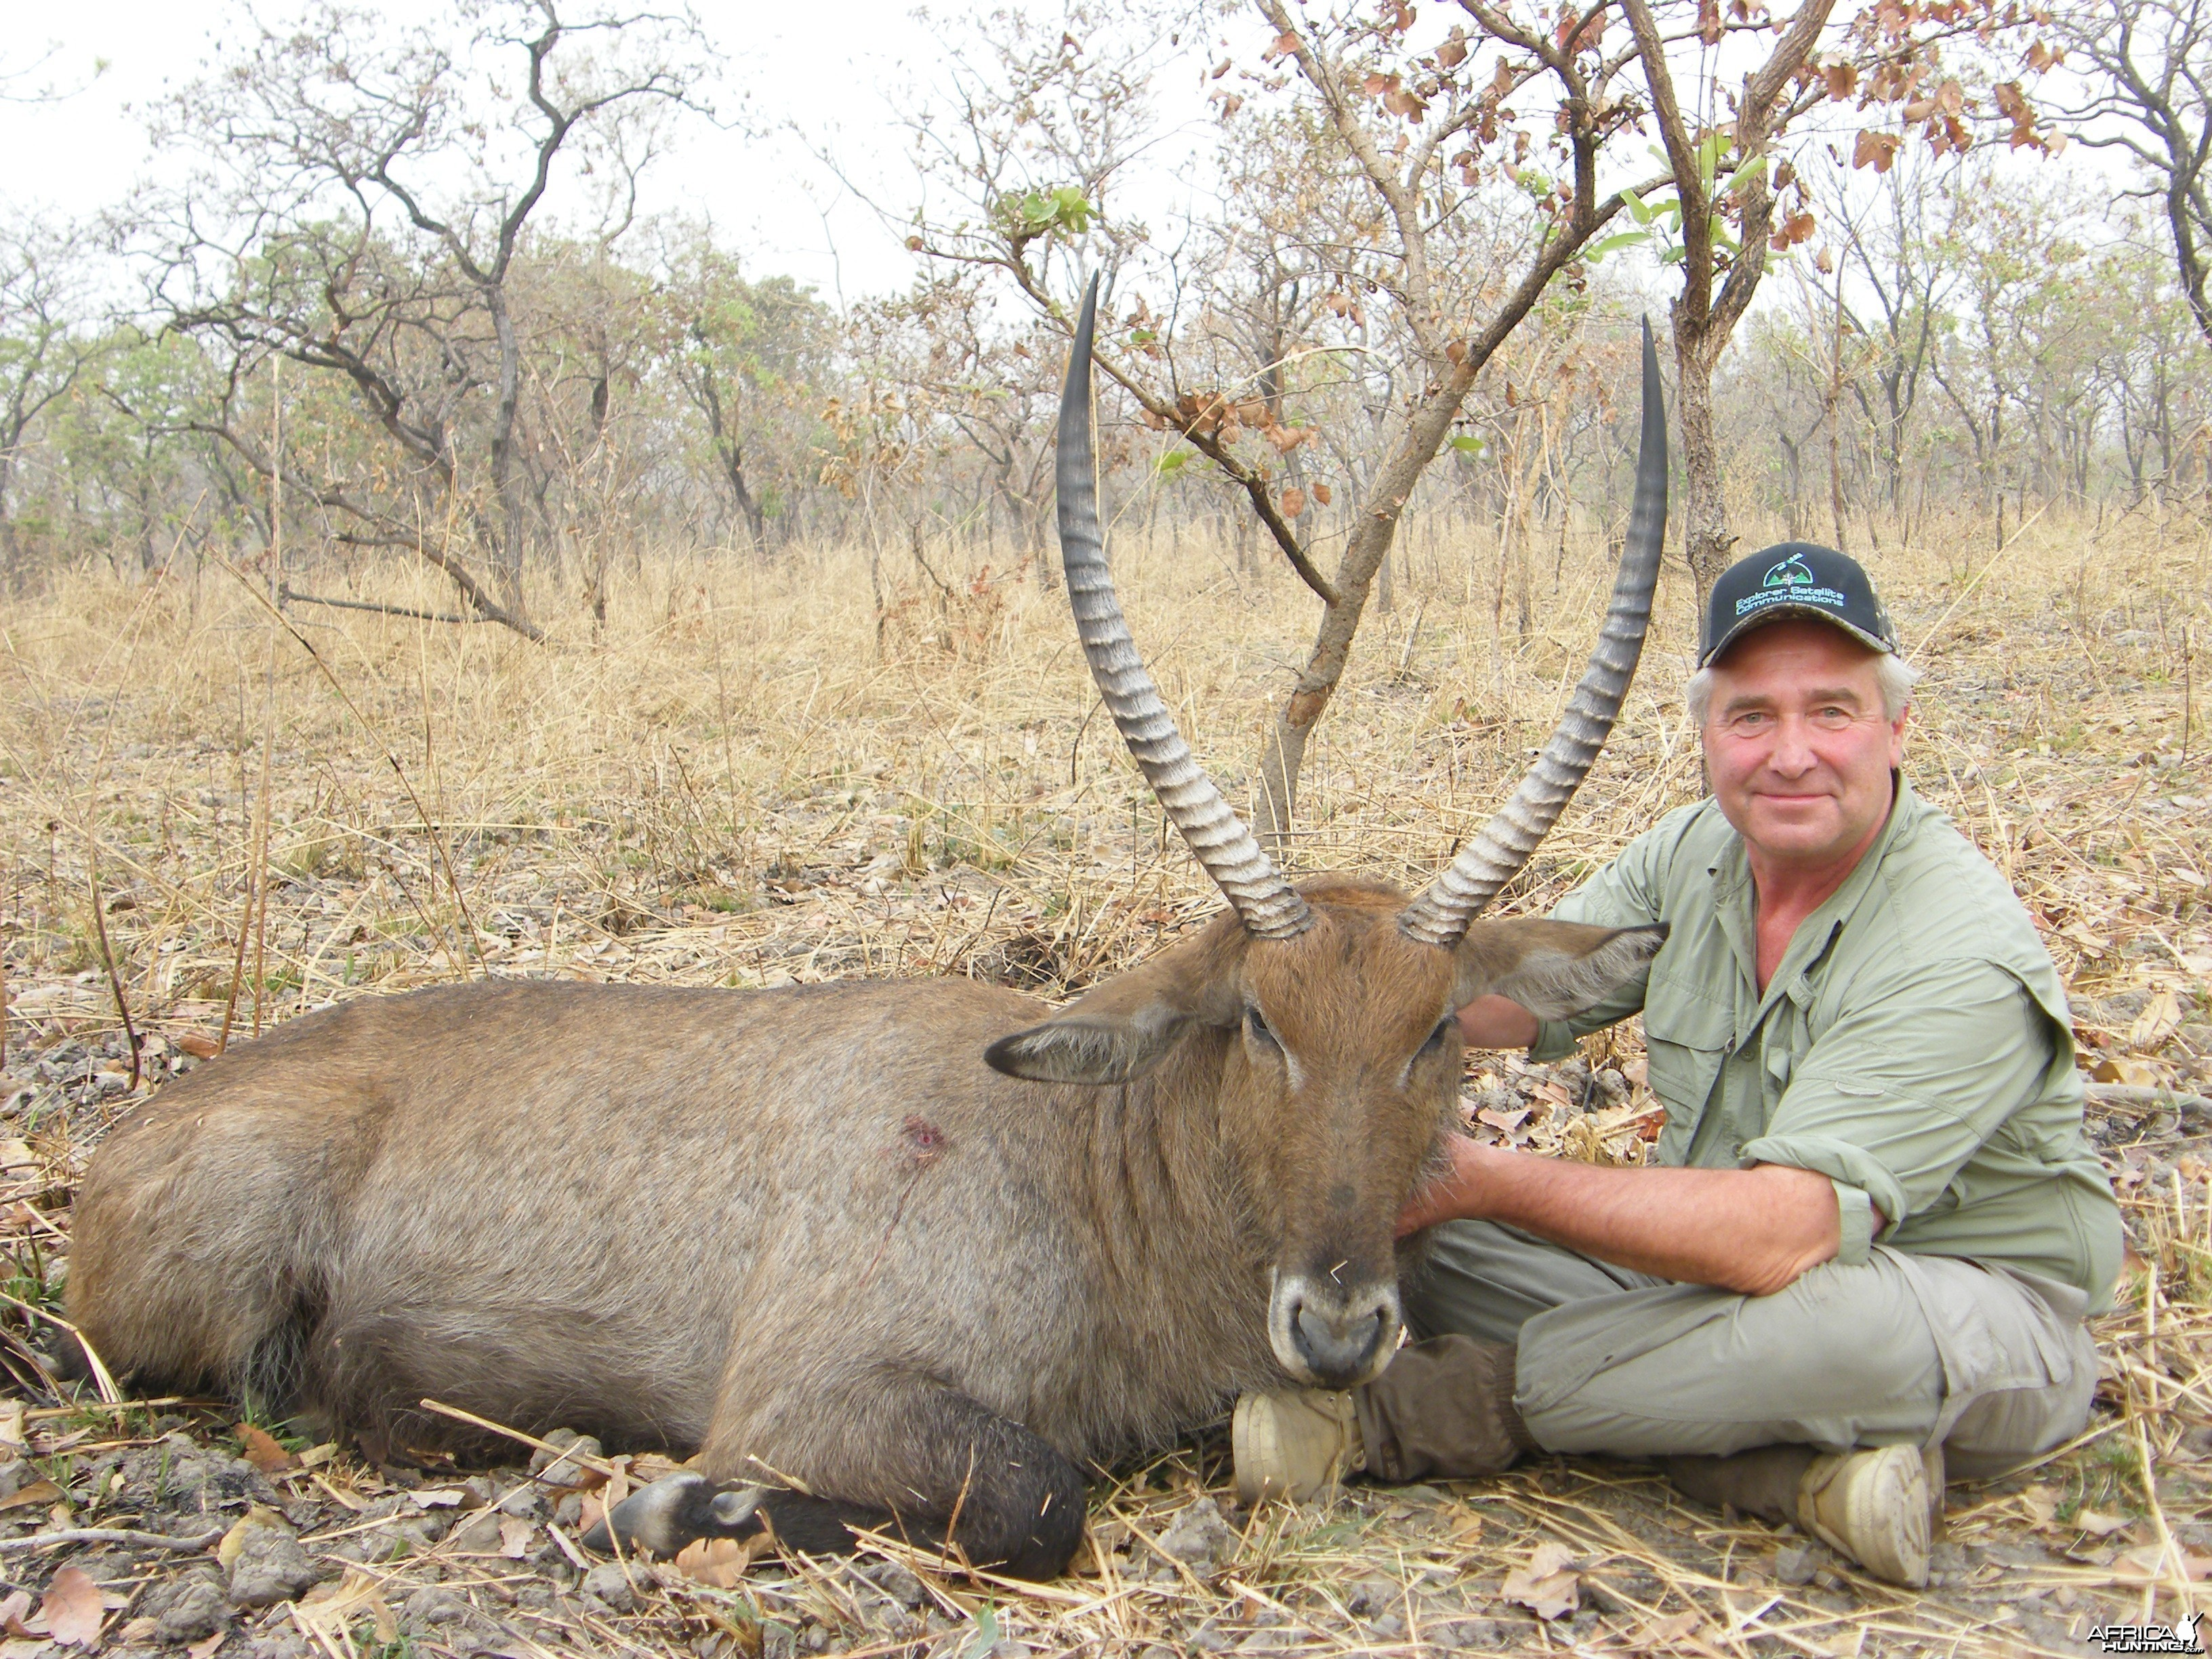 Defassa Waterbuck hunted in Cameroon with Club Faune